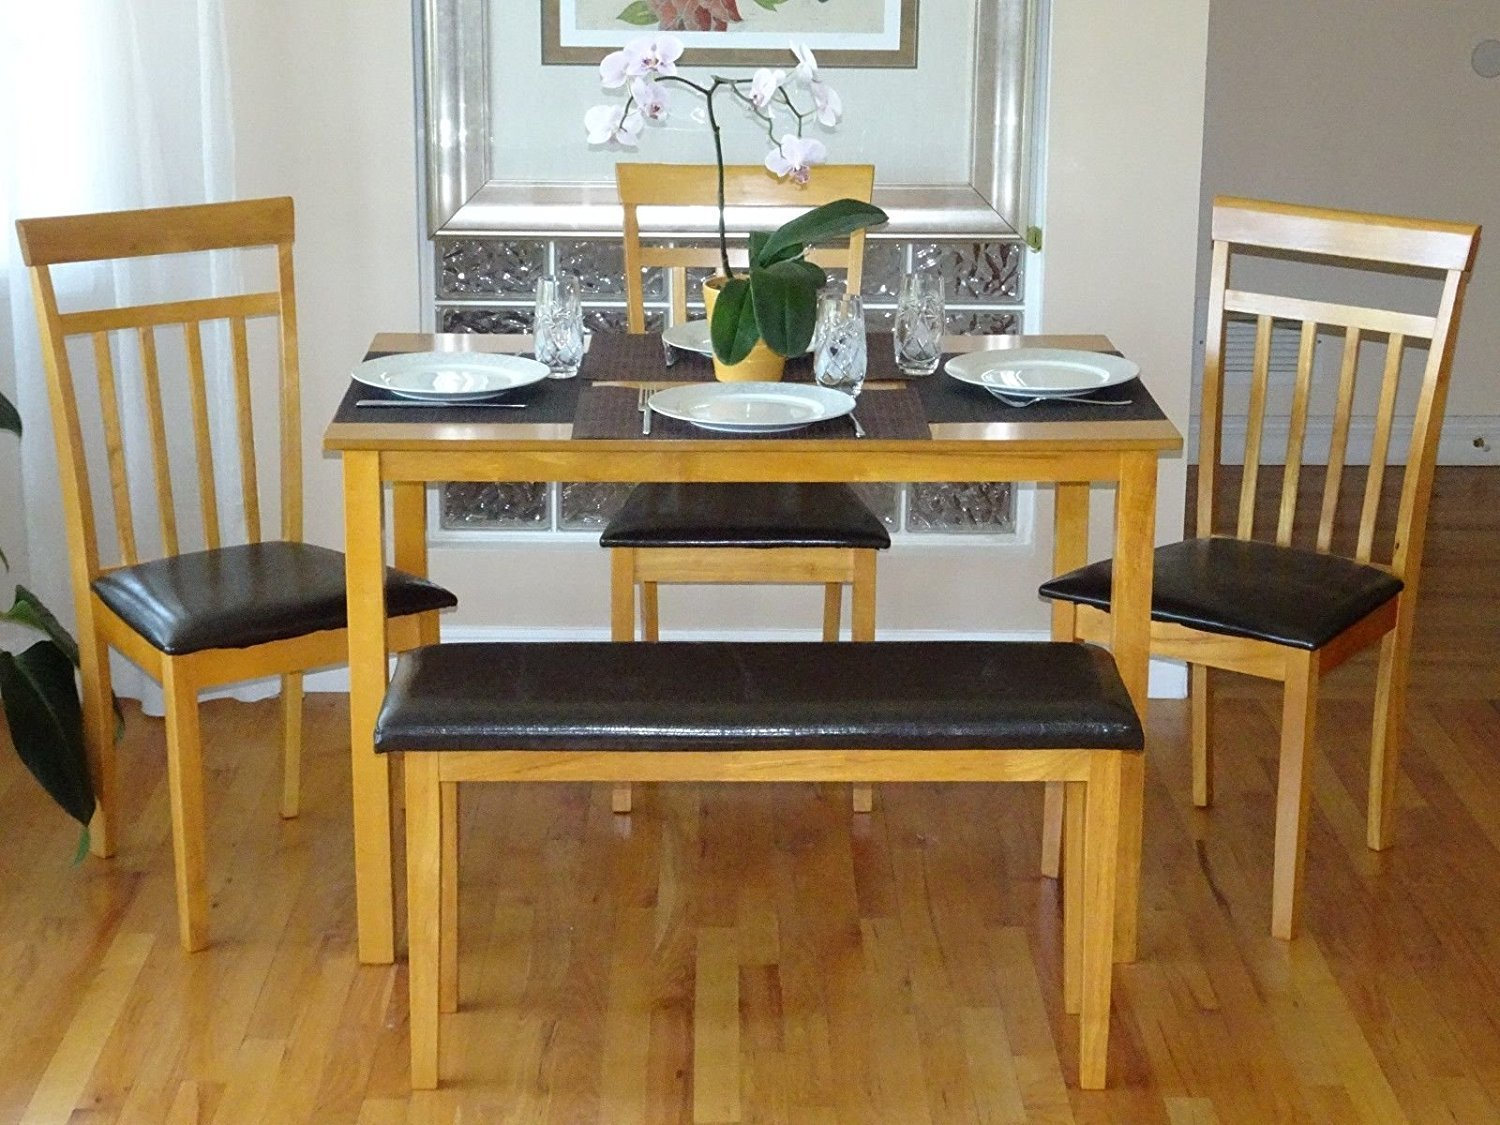 Rattan Wicker Furniture Dining Kitchen Solid Wooden Bench Stained Padded Seat Classic Design in Maple Finish by Rattan Wicker Furniture (Image #2)